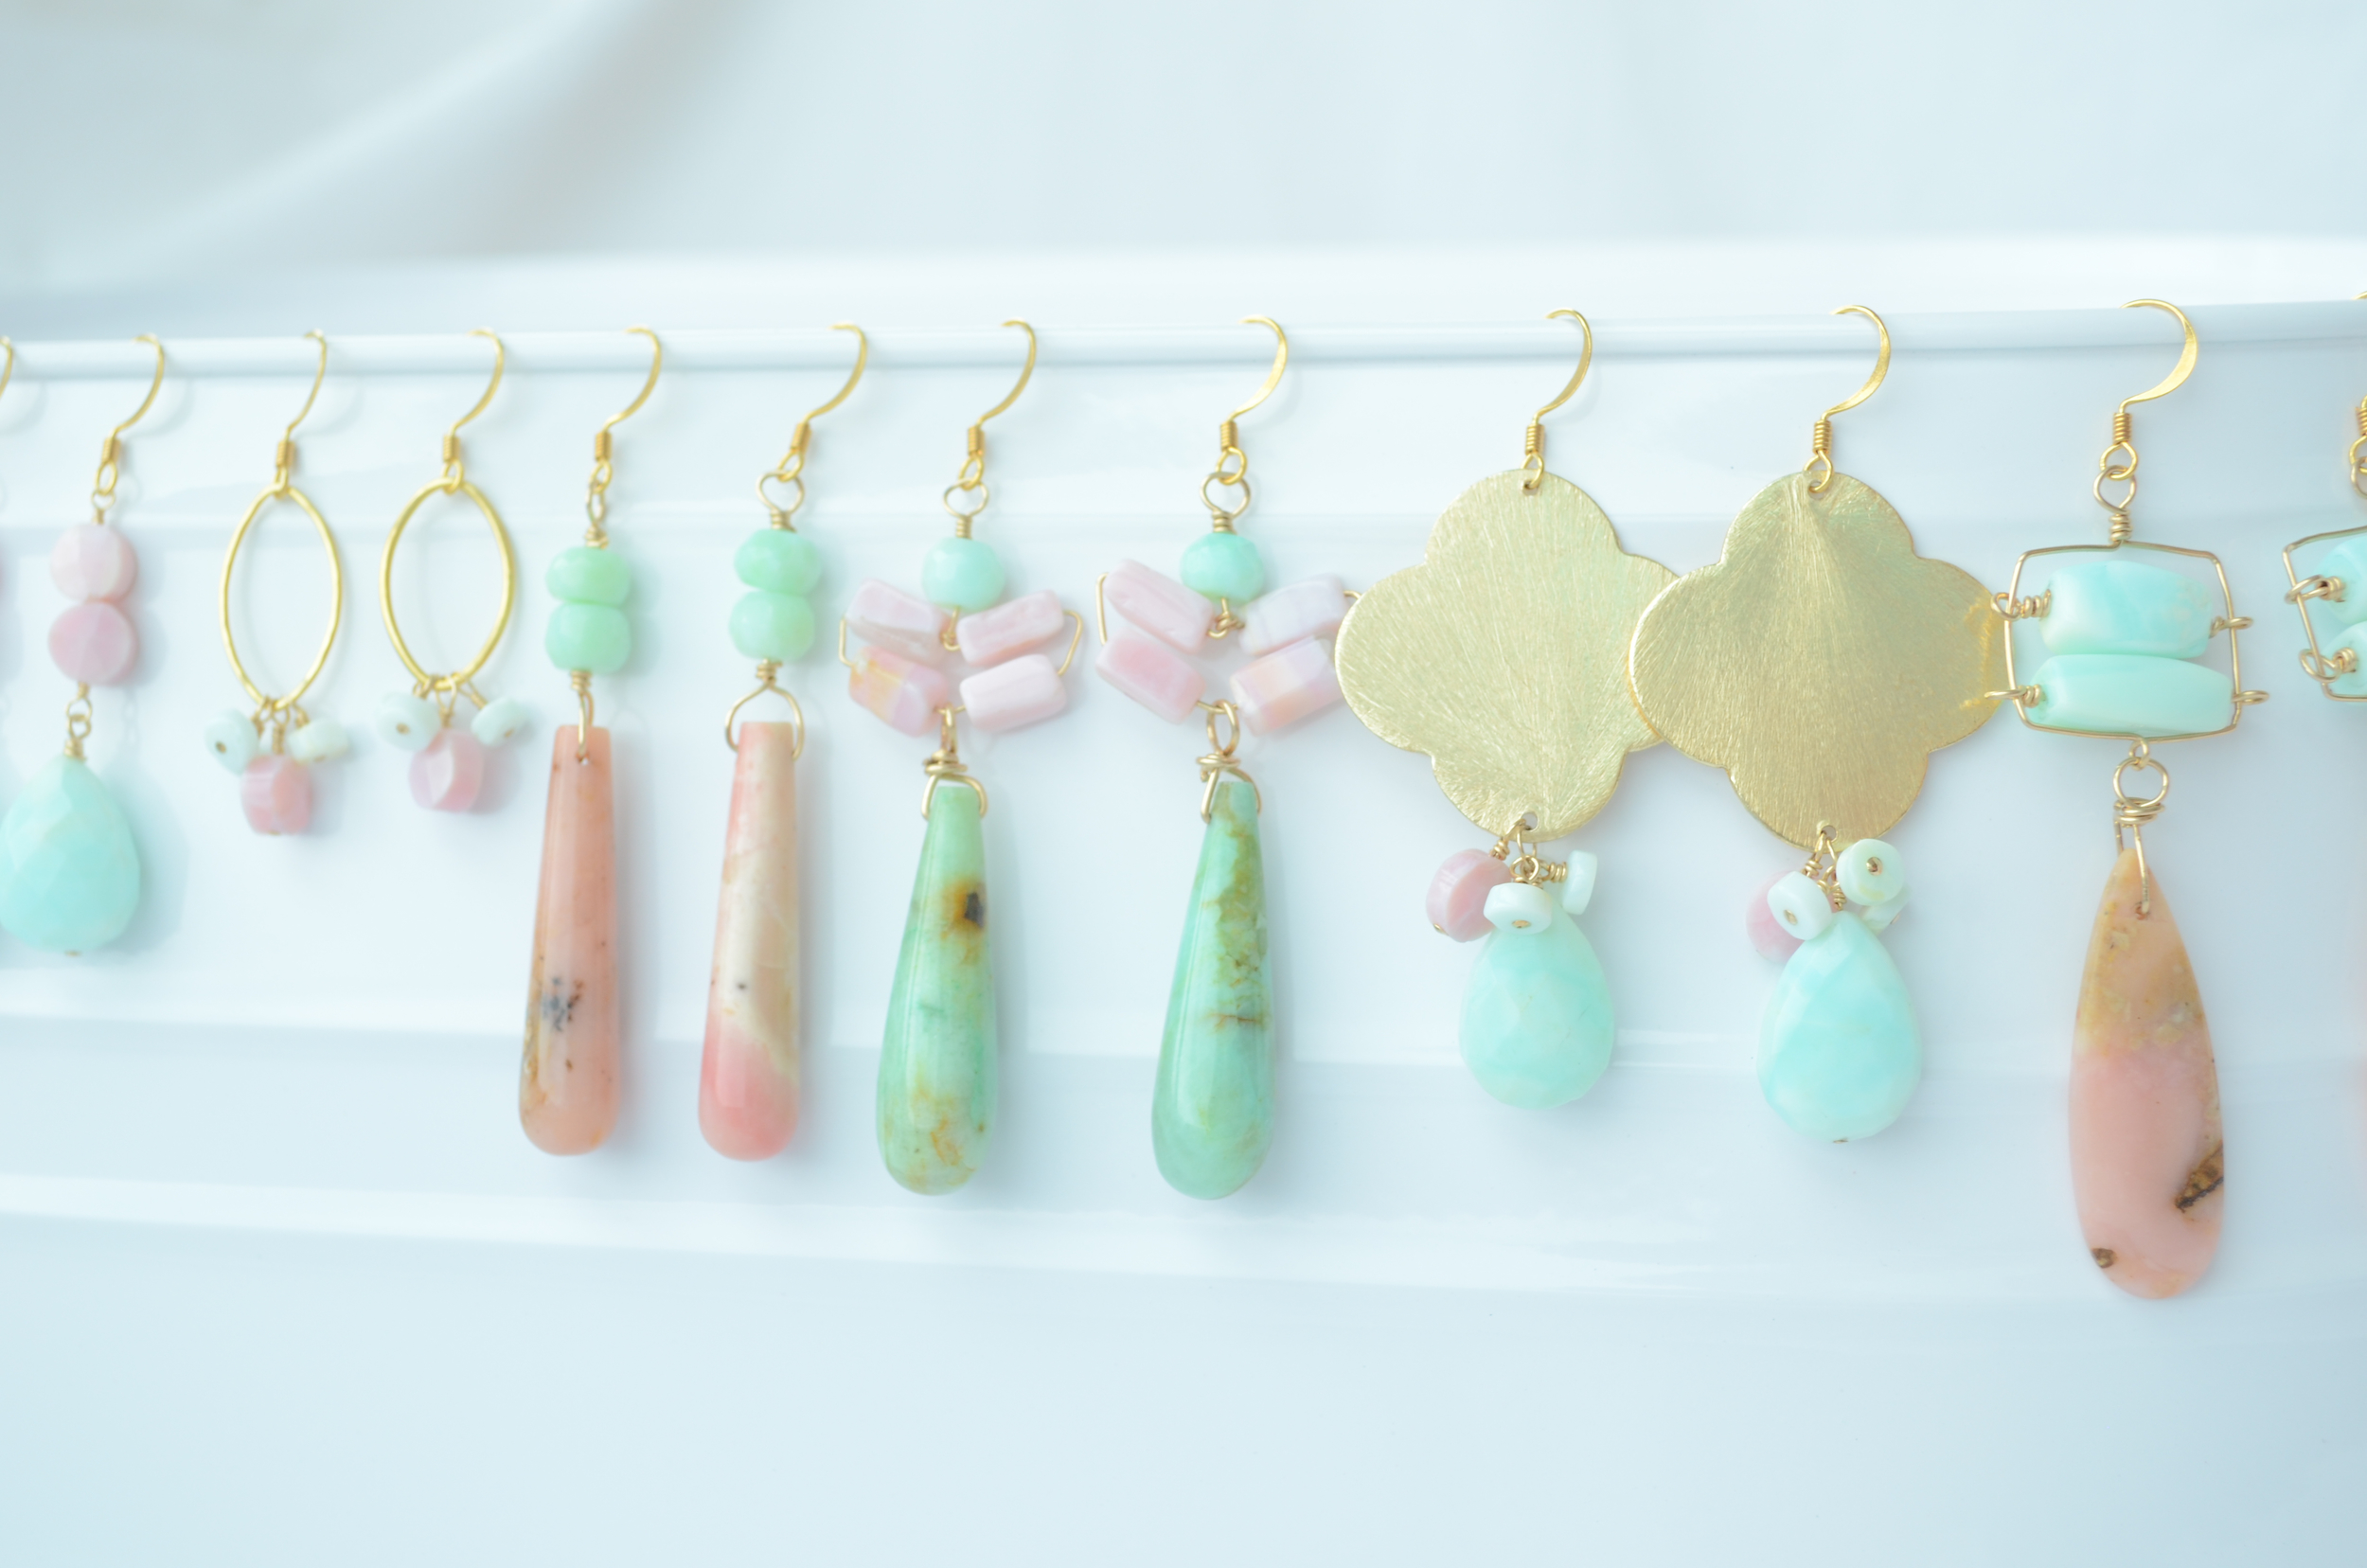 Check out my earrings. Tons of handcrafted styles just added!